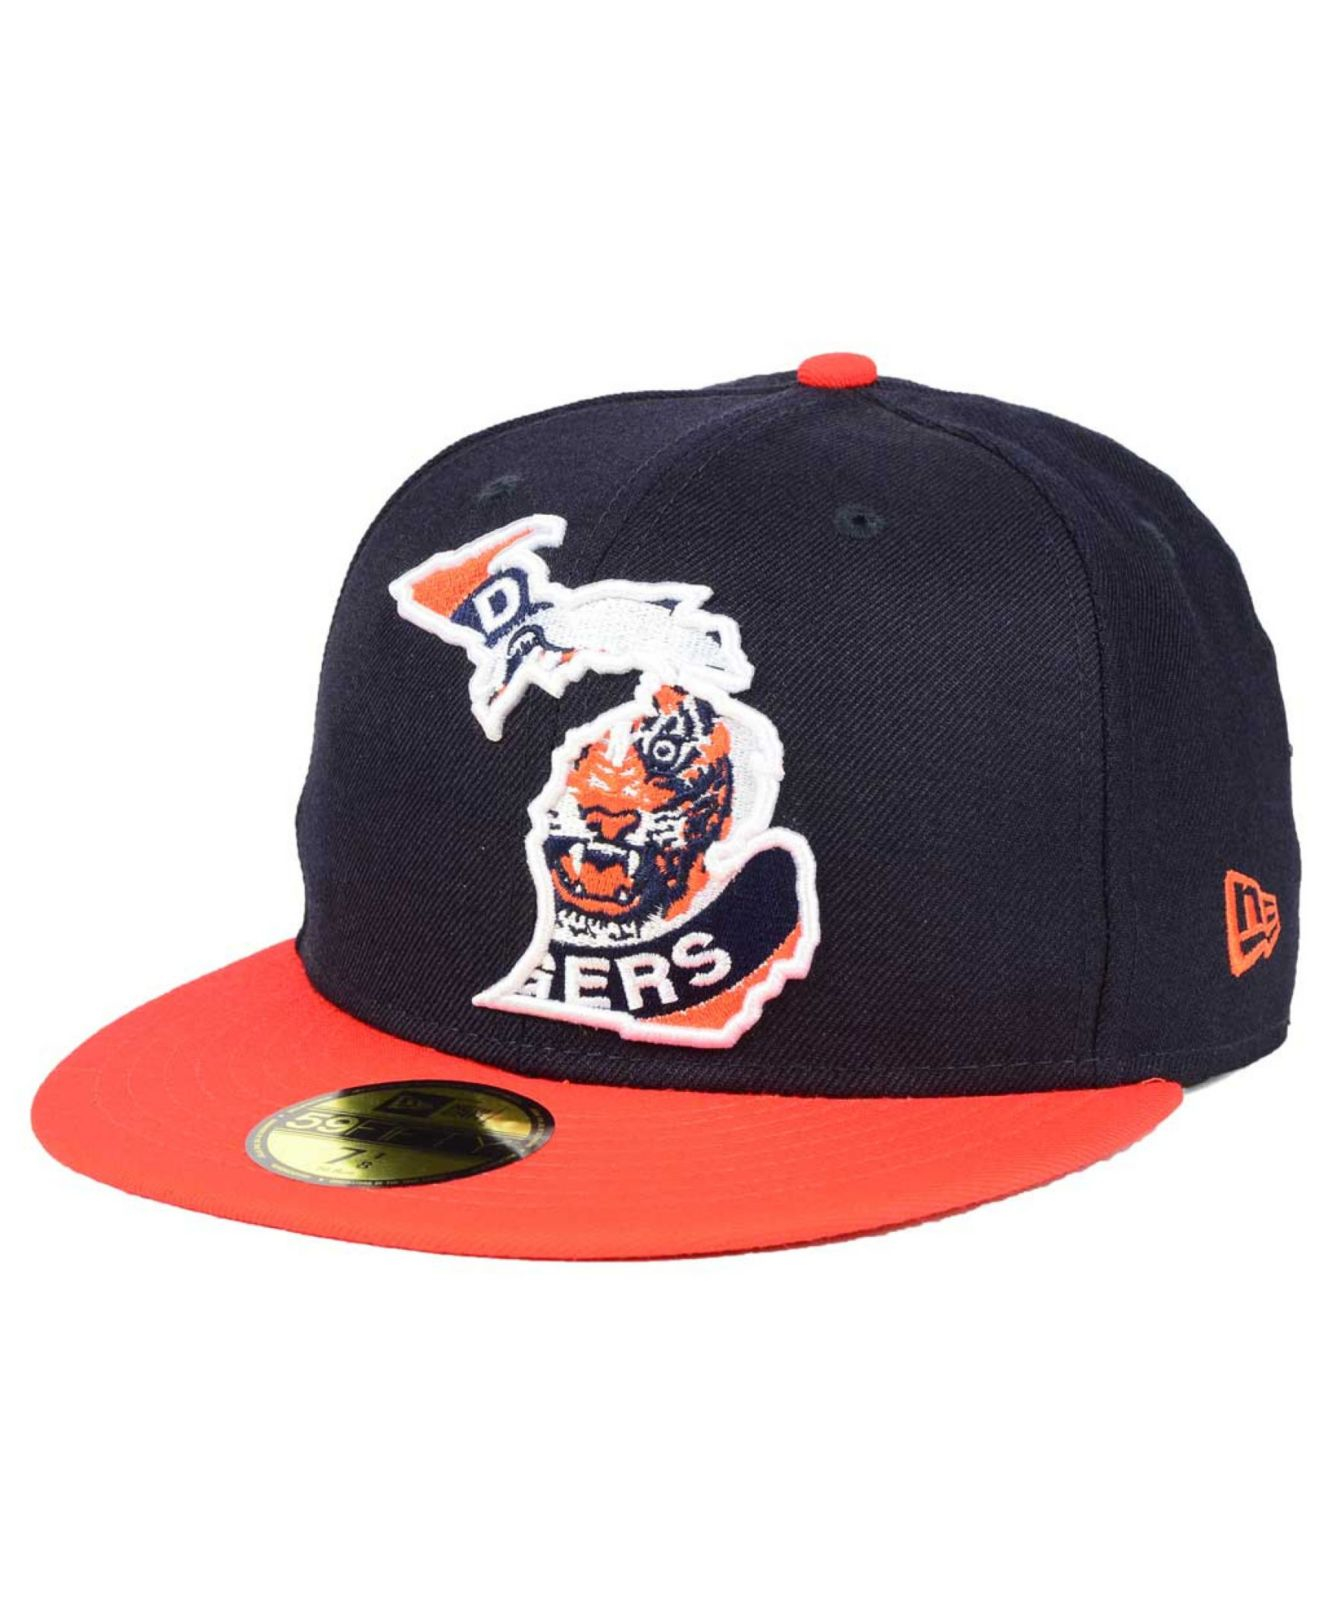 low priced bc378 5e980 ... cheap shopping lyst ktz detroit tigers big state 59fifty cap in blue  for men 1c072 628a0